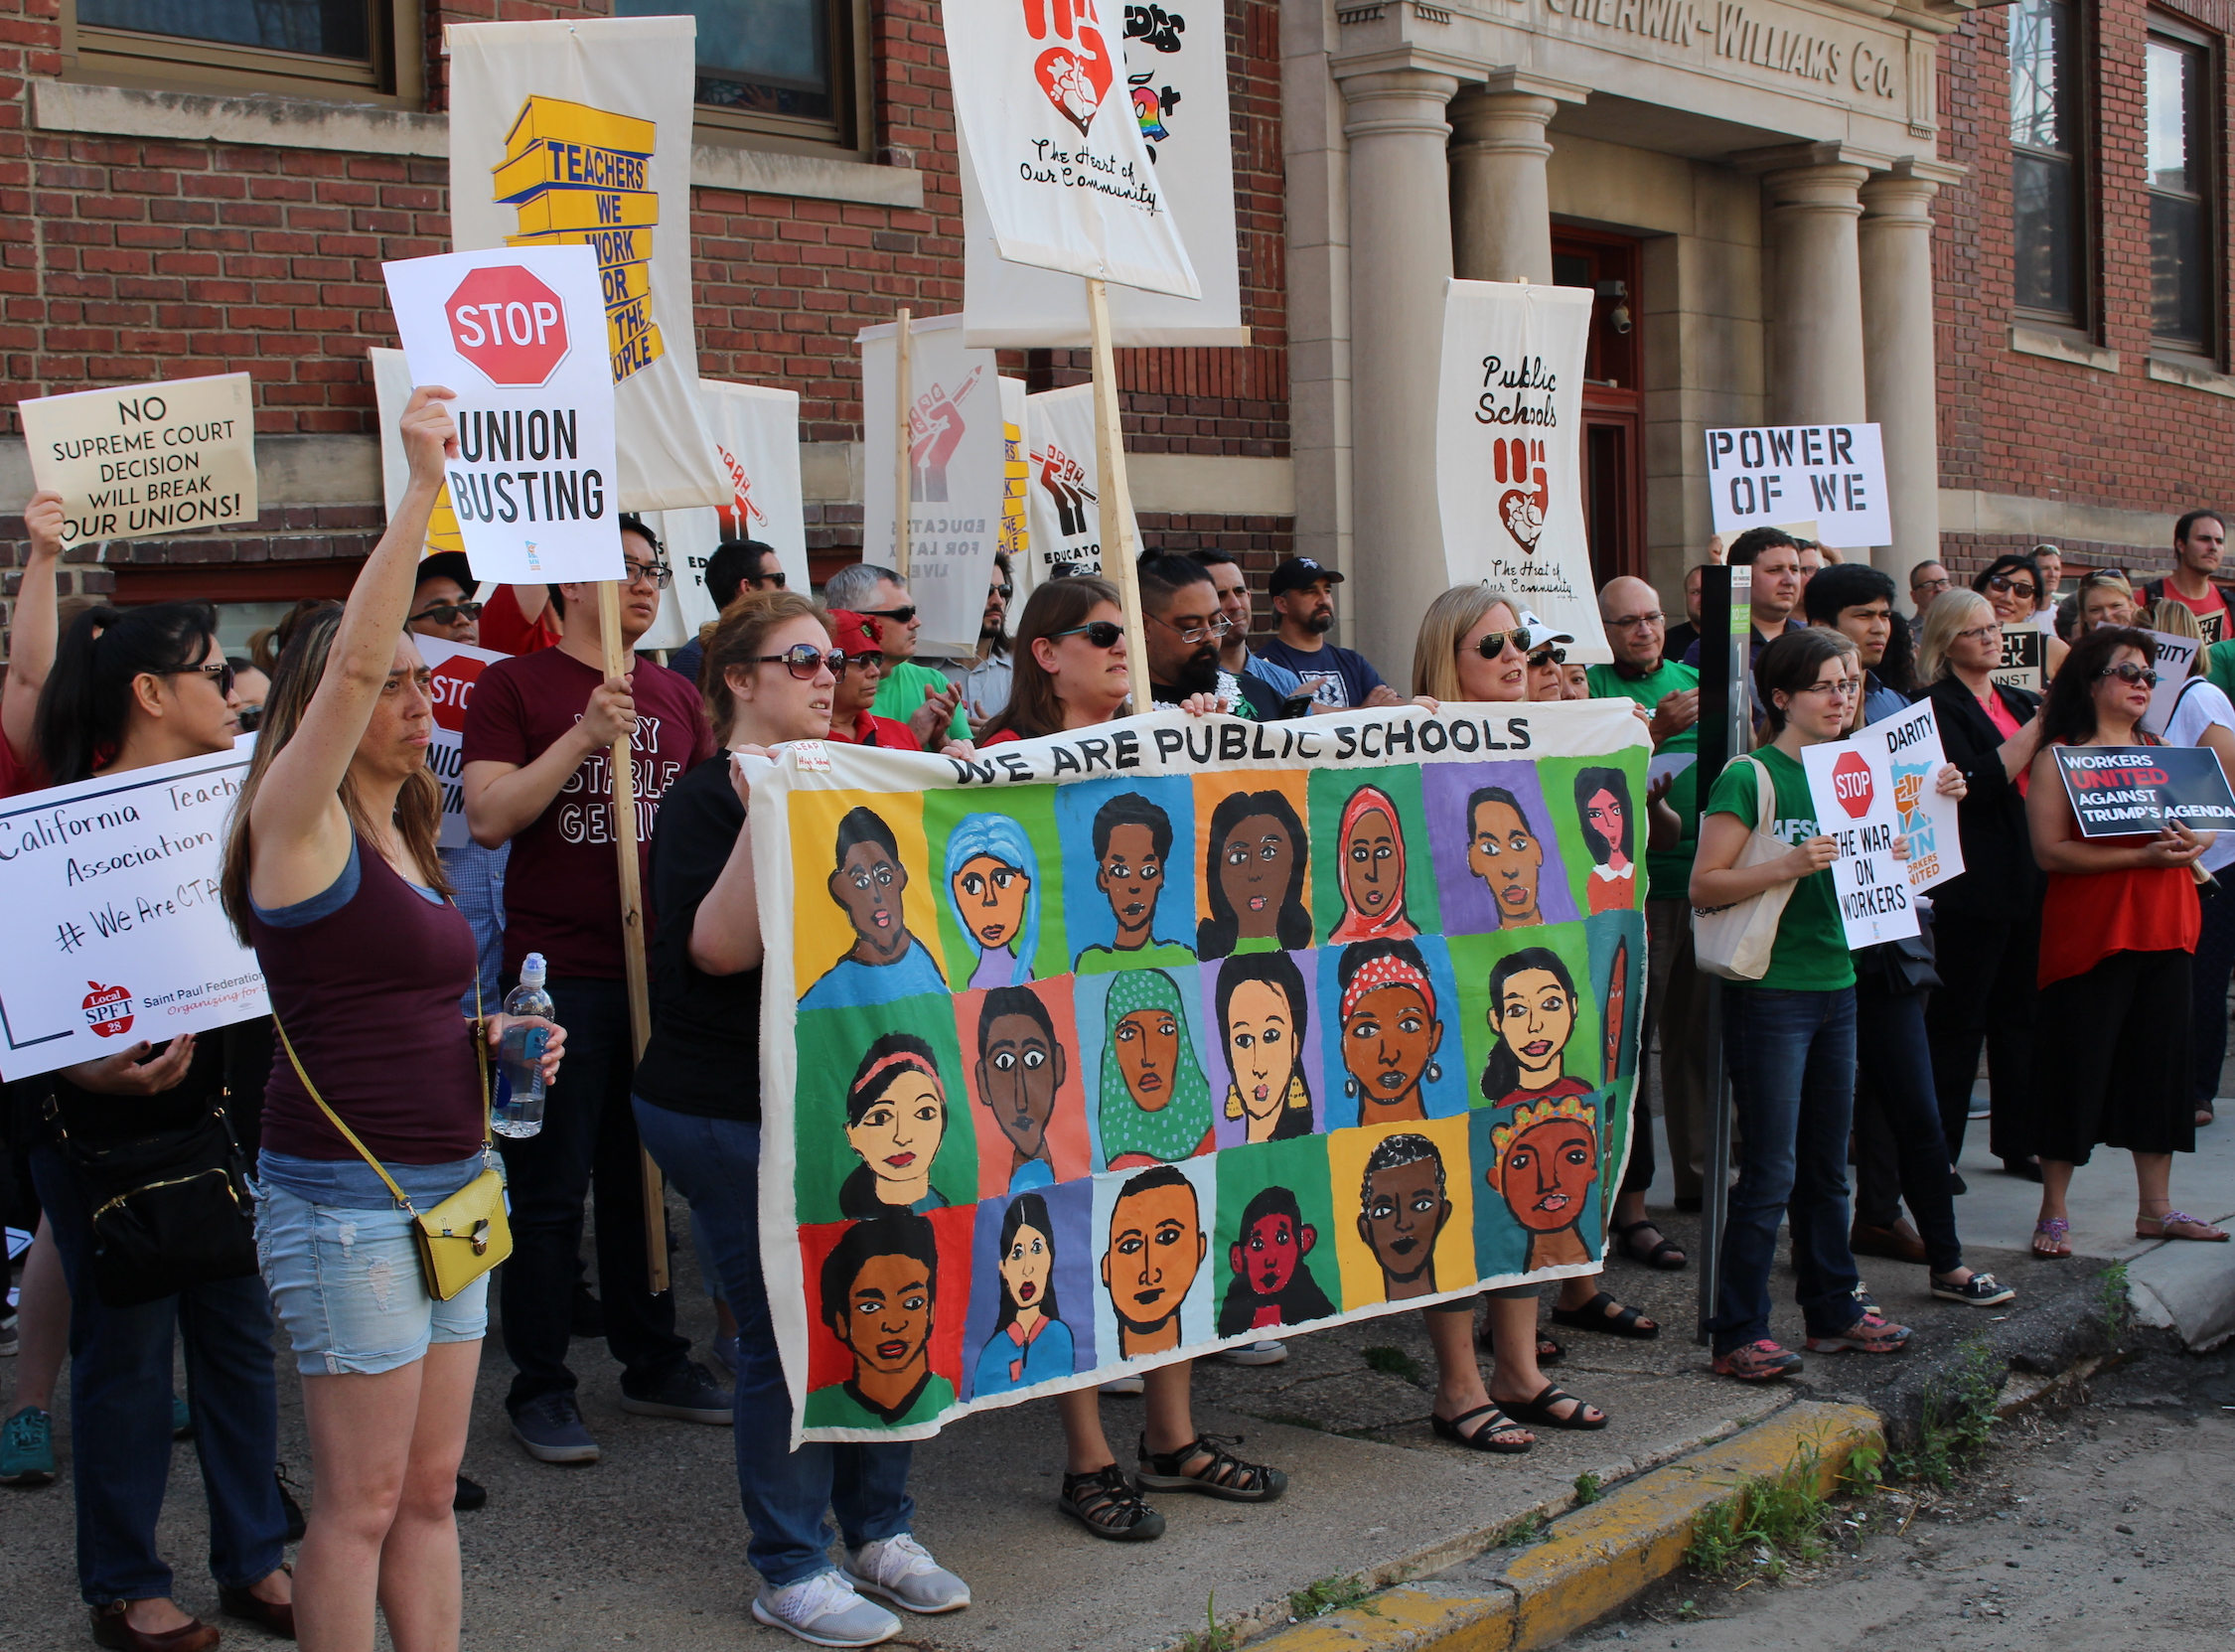 Members of local unions rallied in the Warehouse District on June 27 to protest a U.S. Supreme Court ruling that bans public unions from collecting agency fees from non-members.